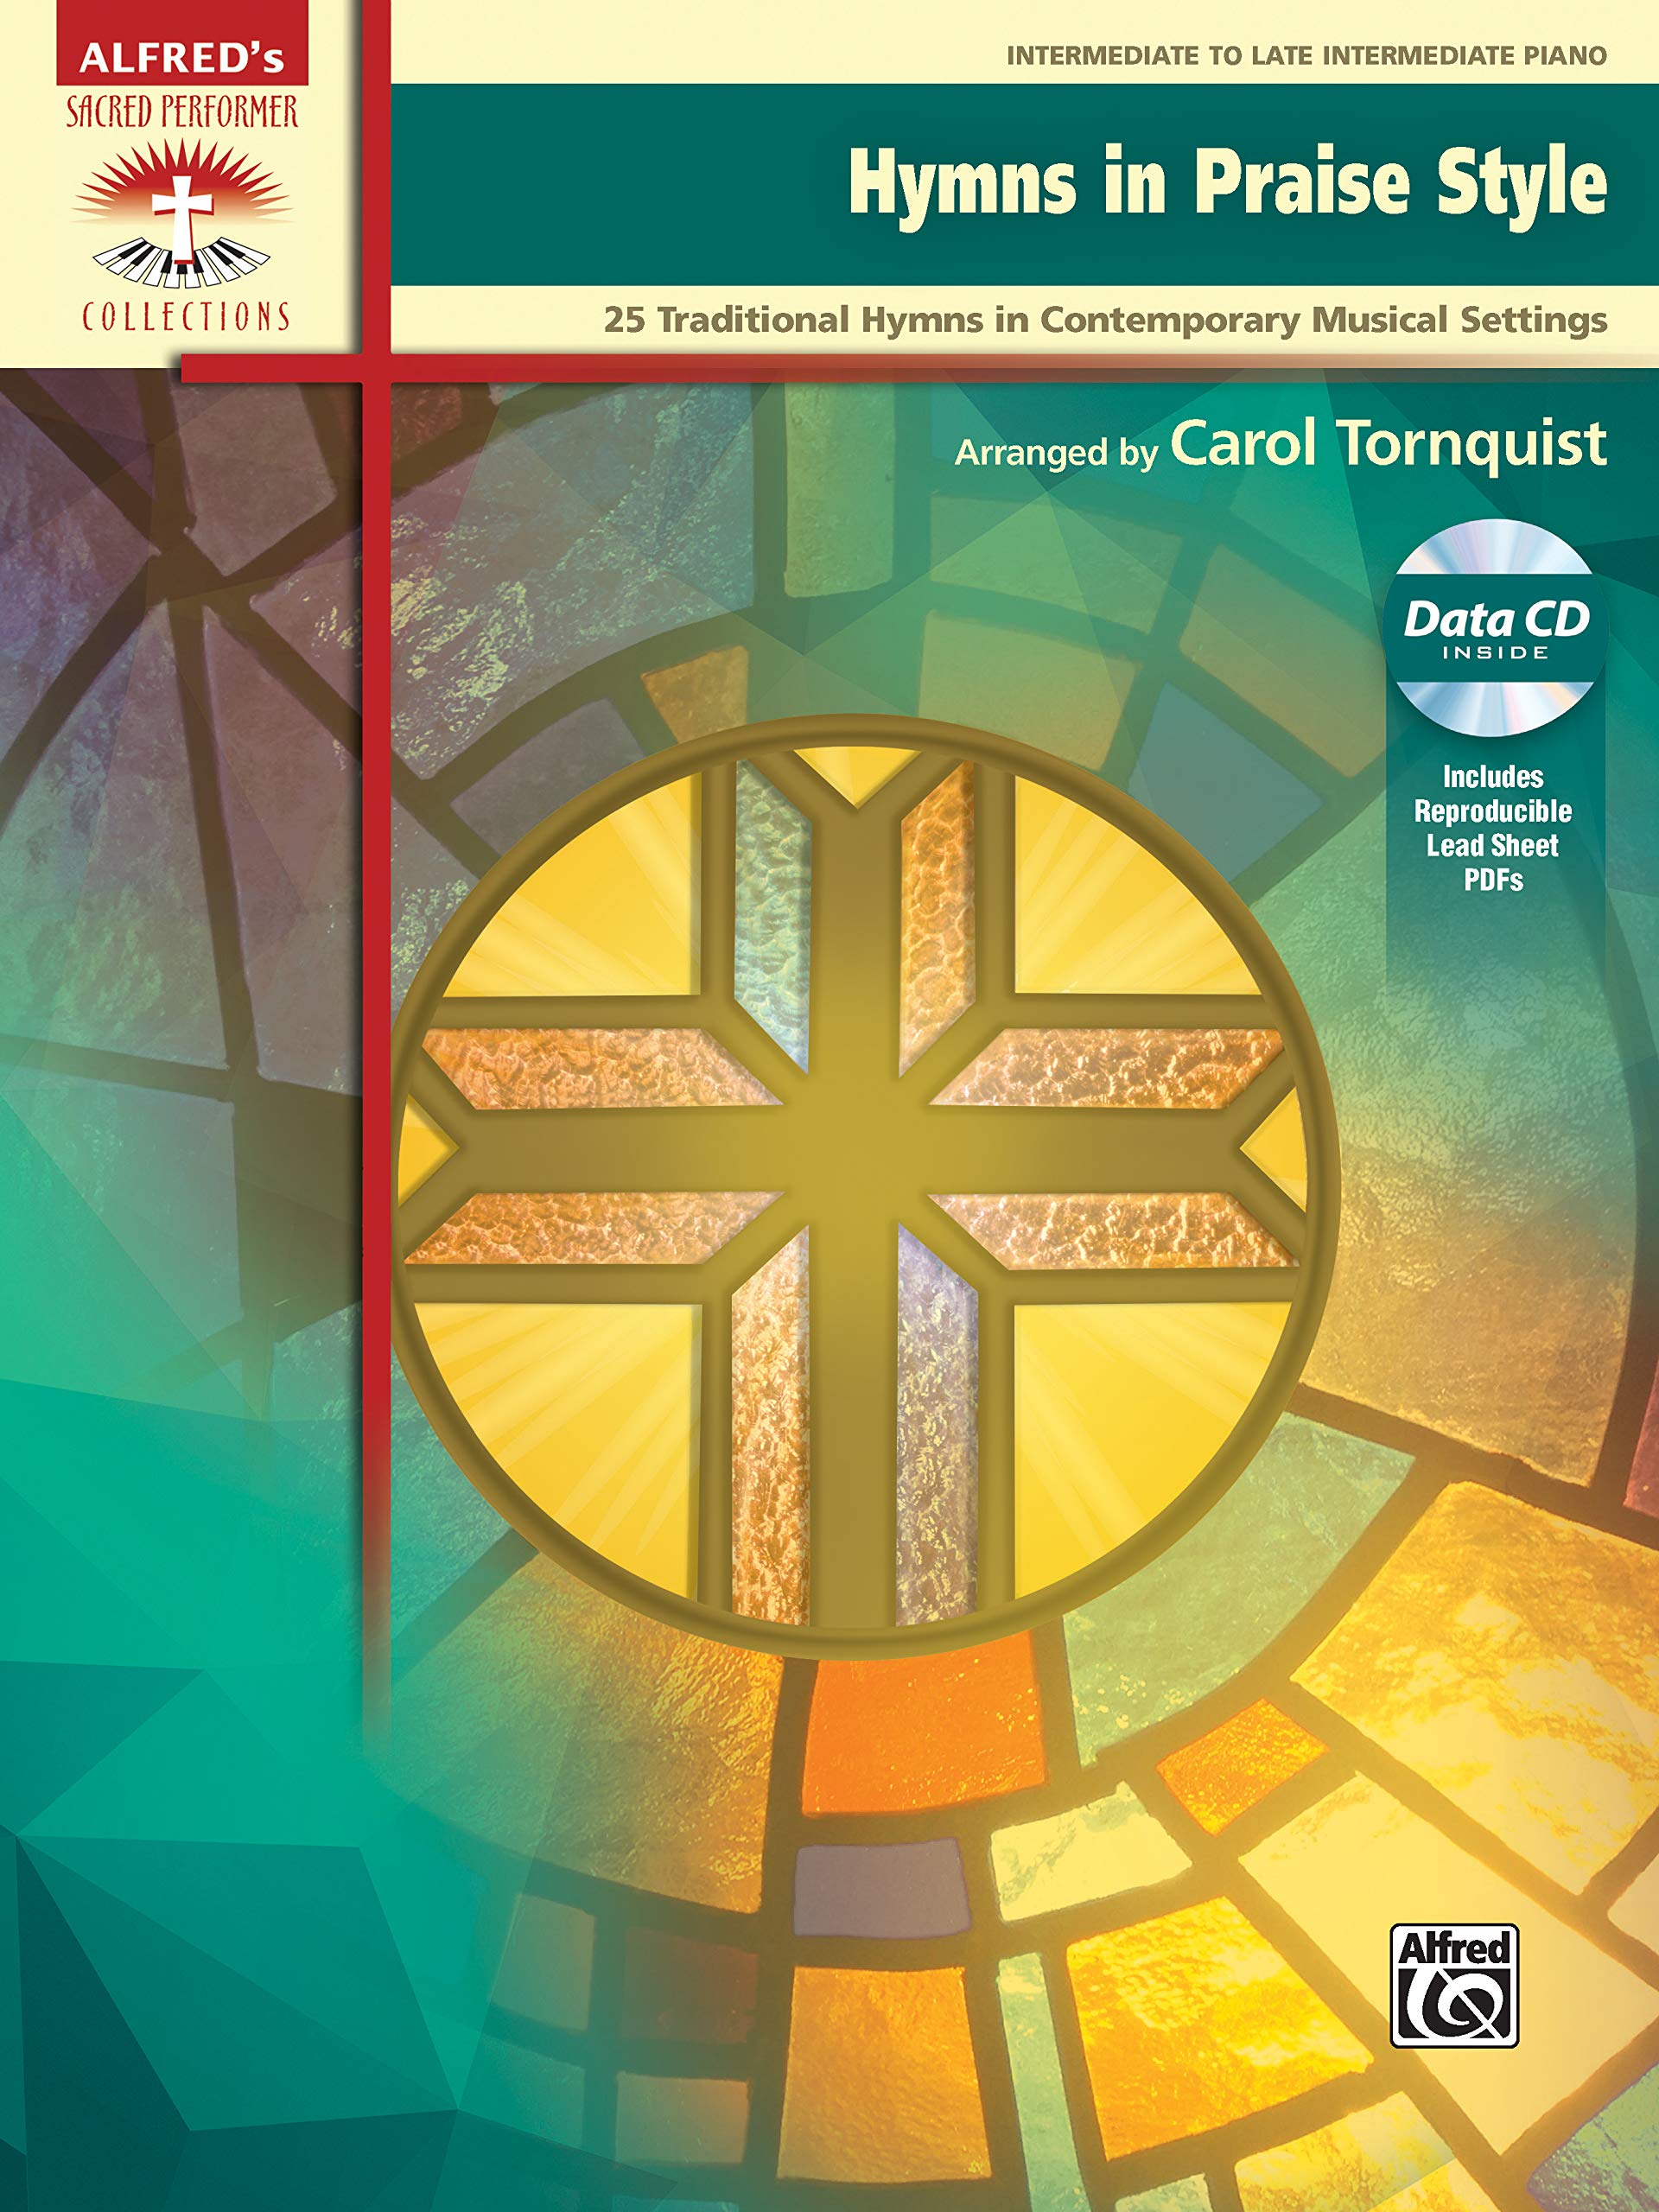 Hymns in Praise Style: 25 Traditional Hymns in Contemporary Musical